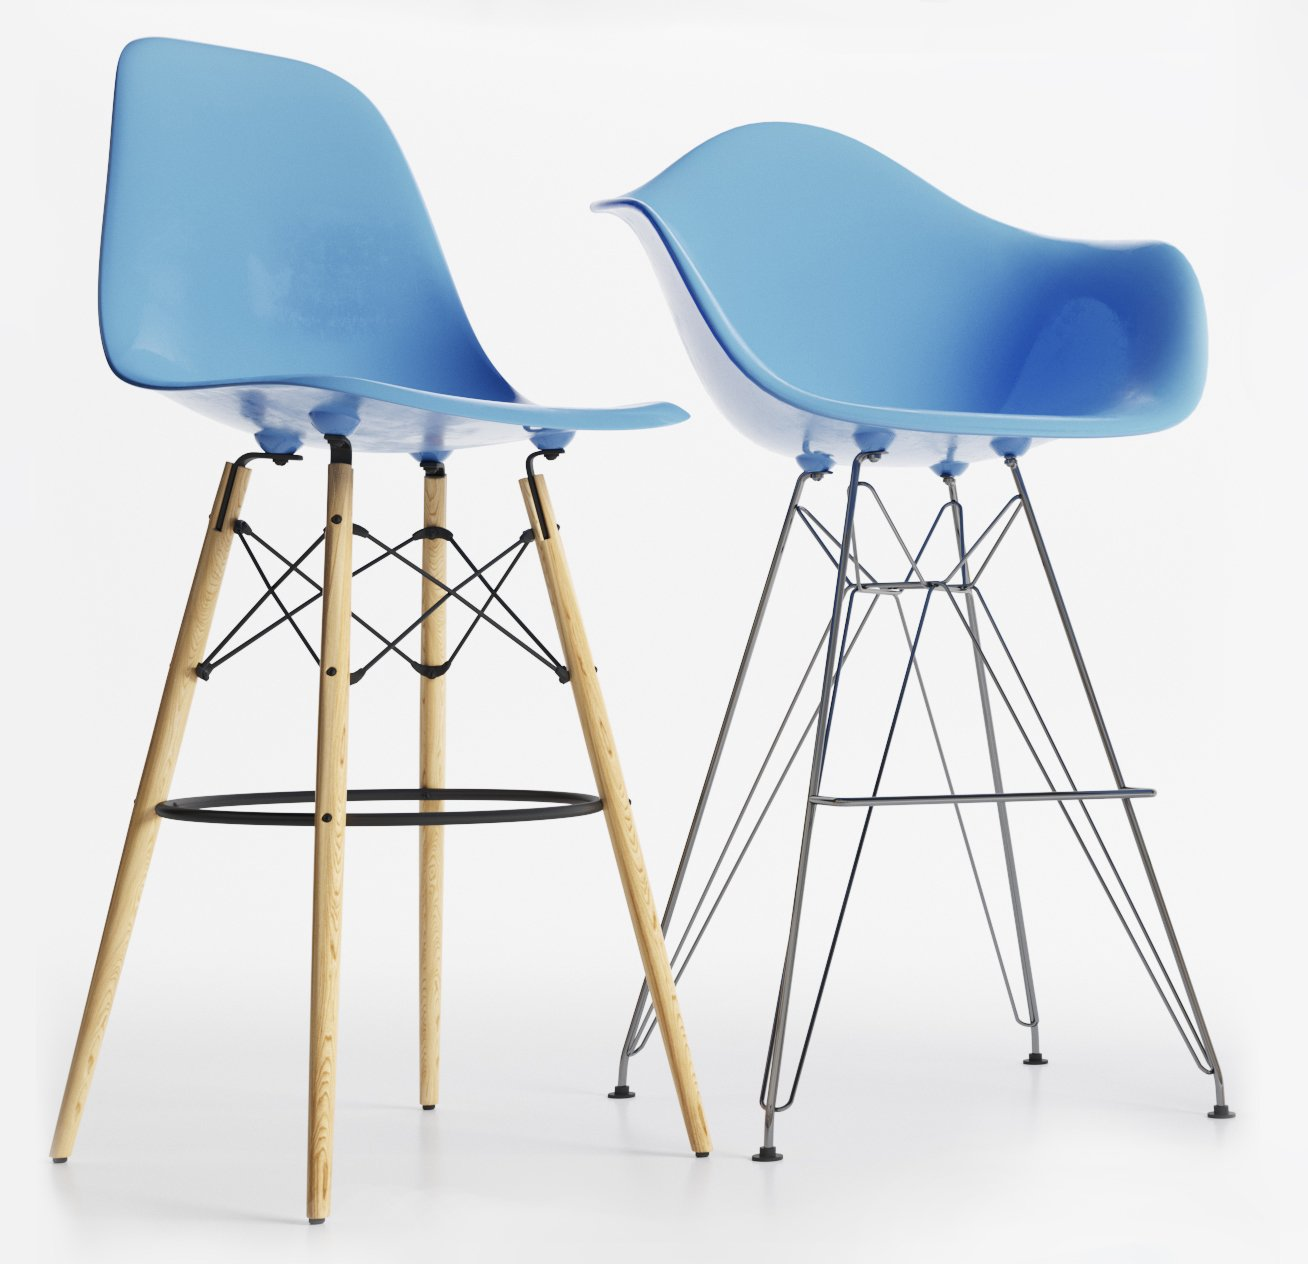 Eames Plastic Side Chairs. Remove Bookmark Bookmark This Item